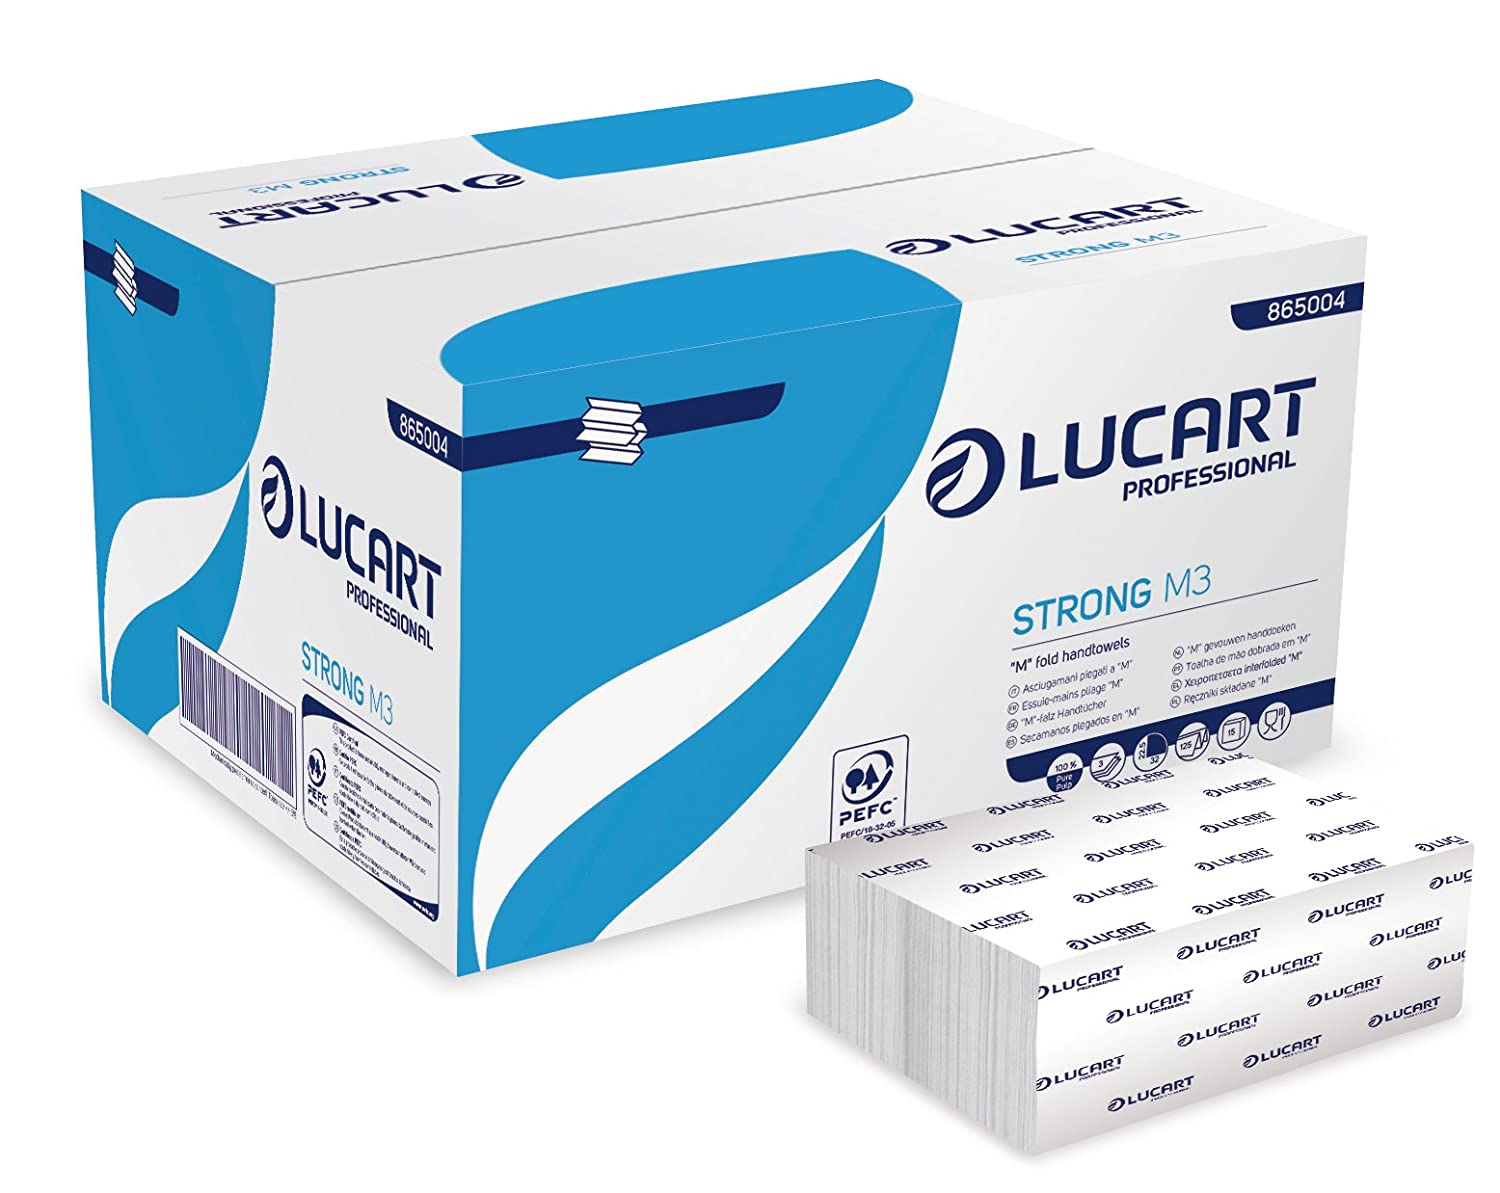 Lucart Professional 865004 Hand Towels, 125 M-Fold, Strong M3 (Pack of 1875)